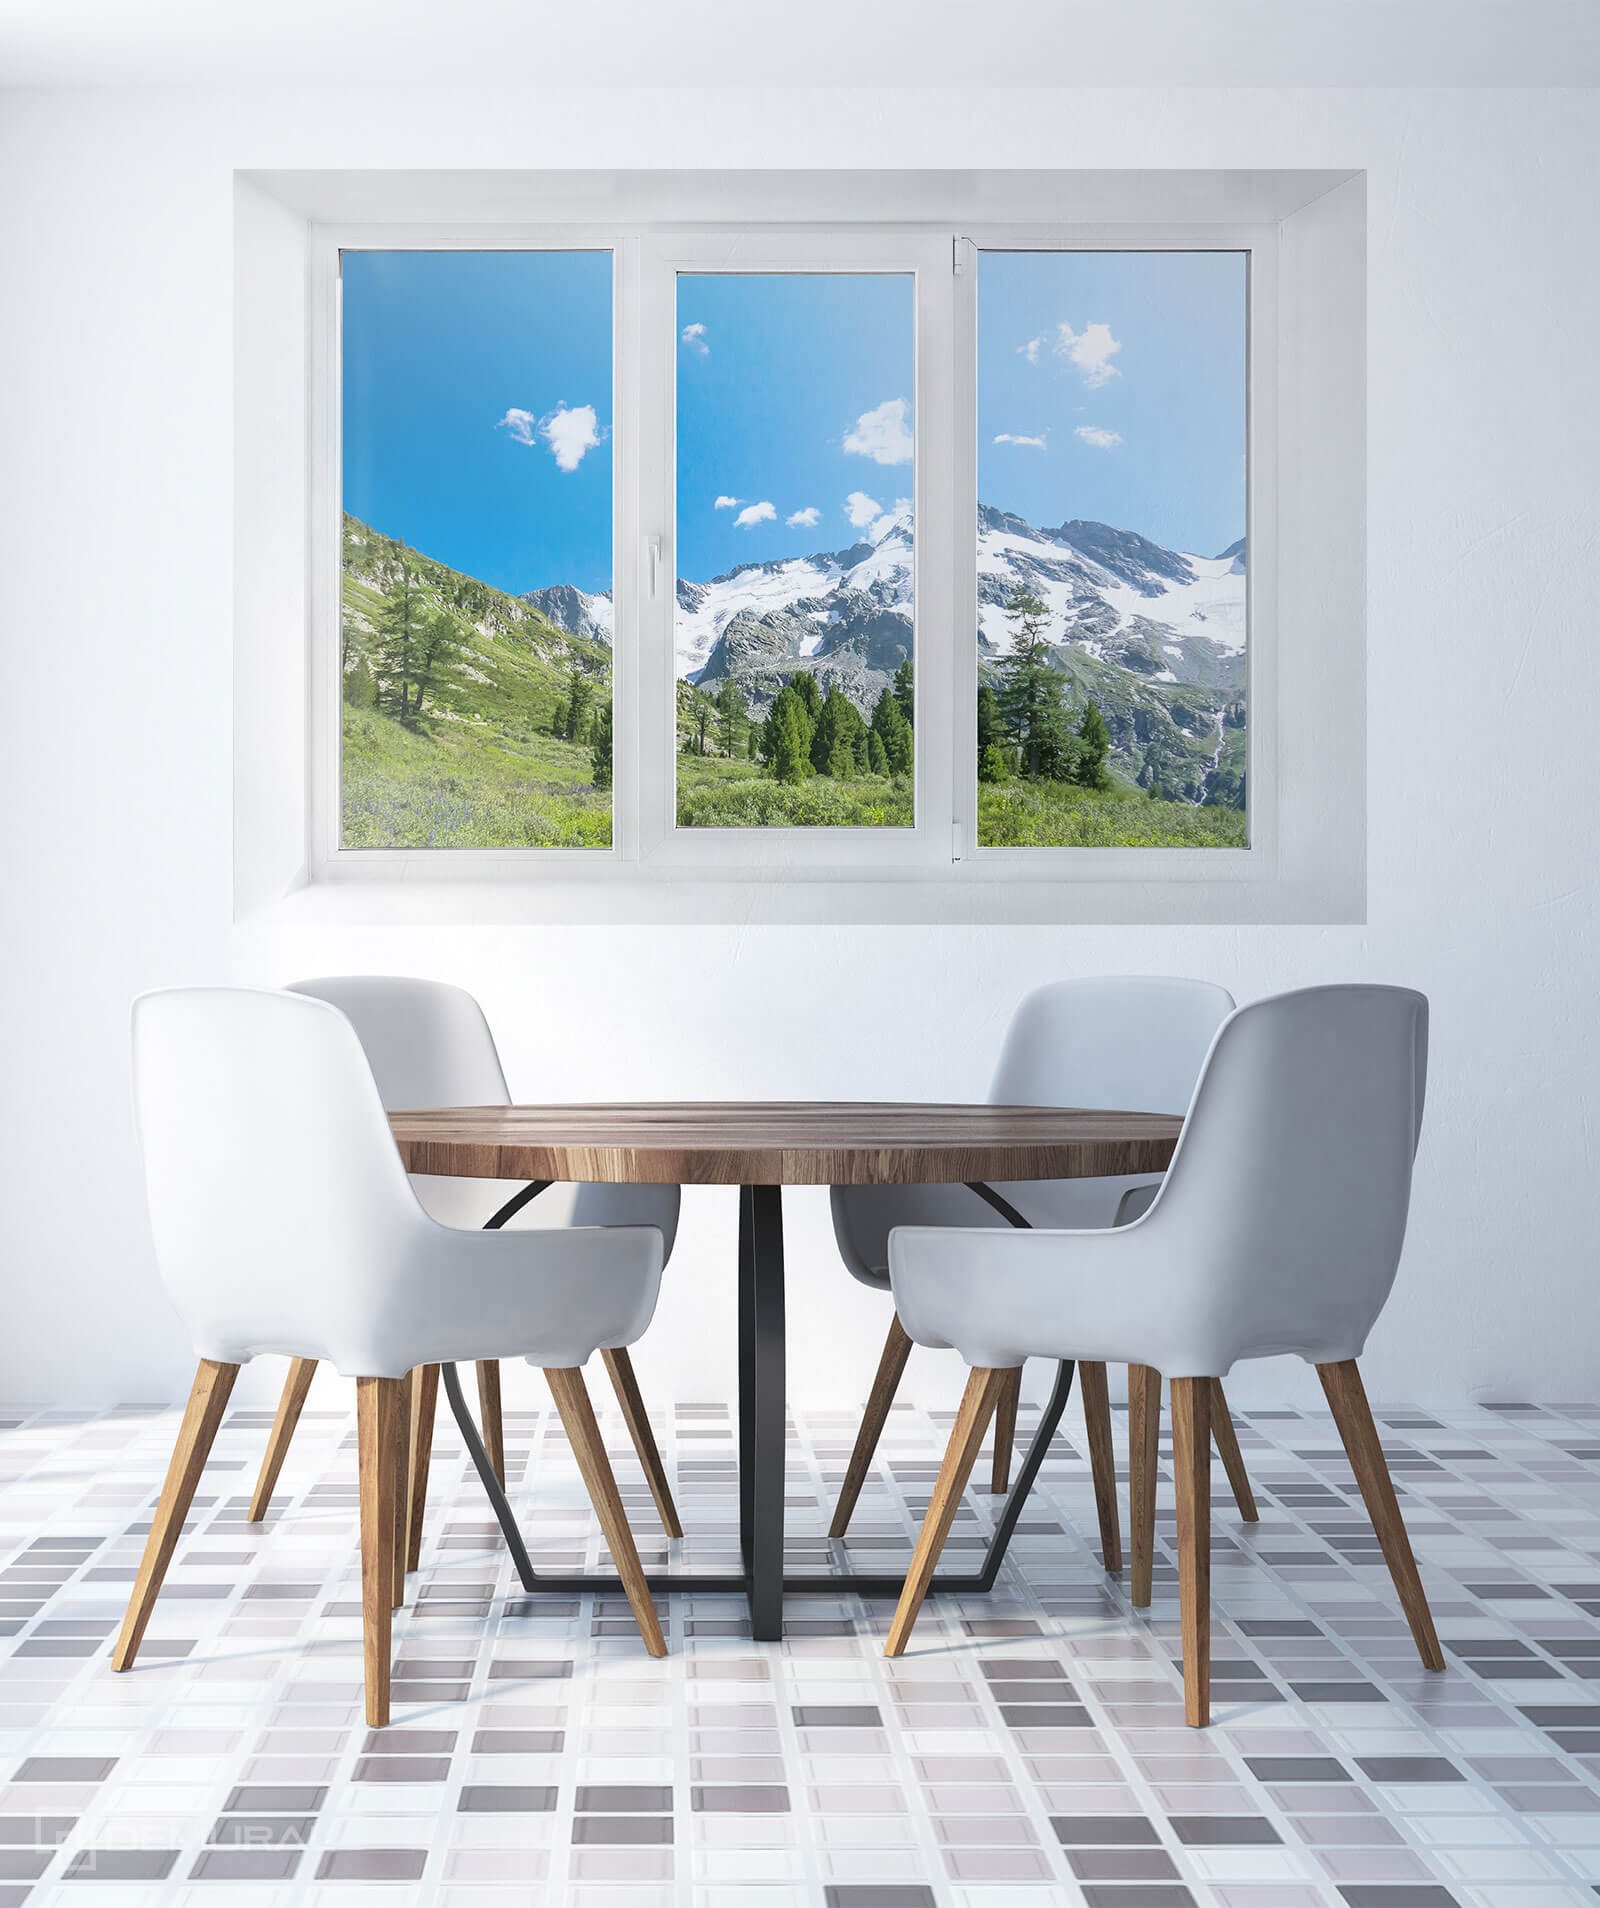 Photo wallpaper House in mountains - Photo wallpaper window - Demural